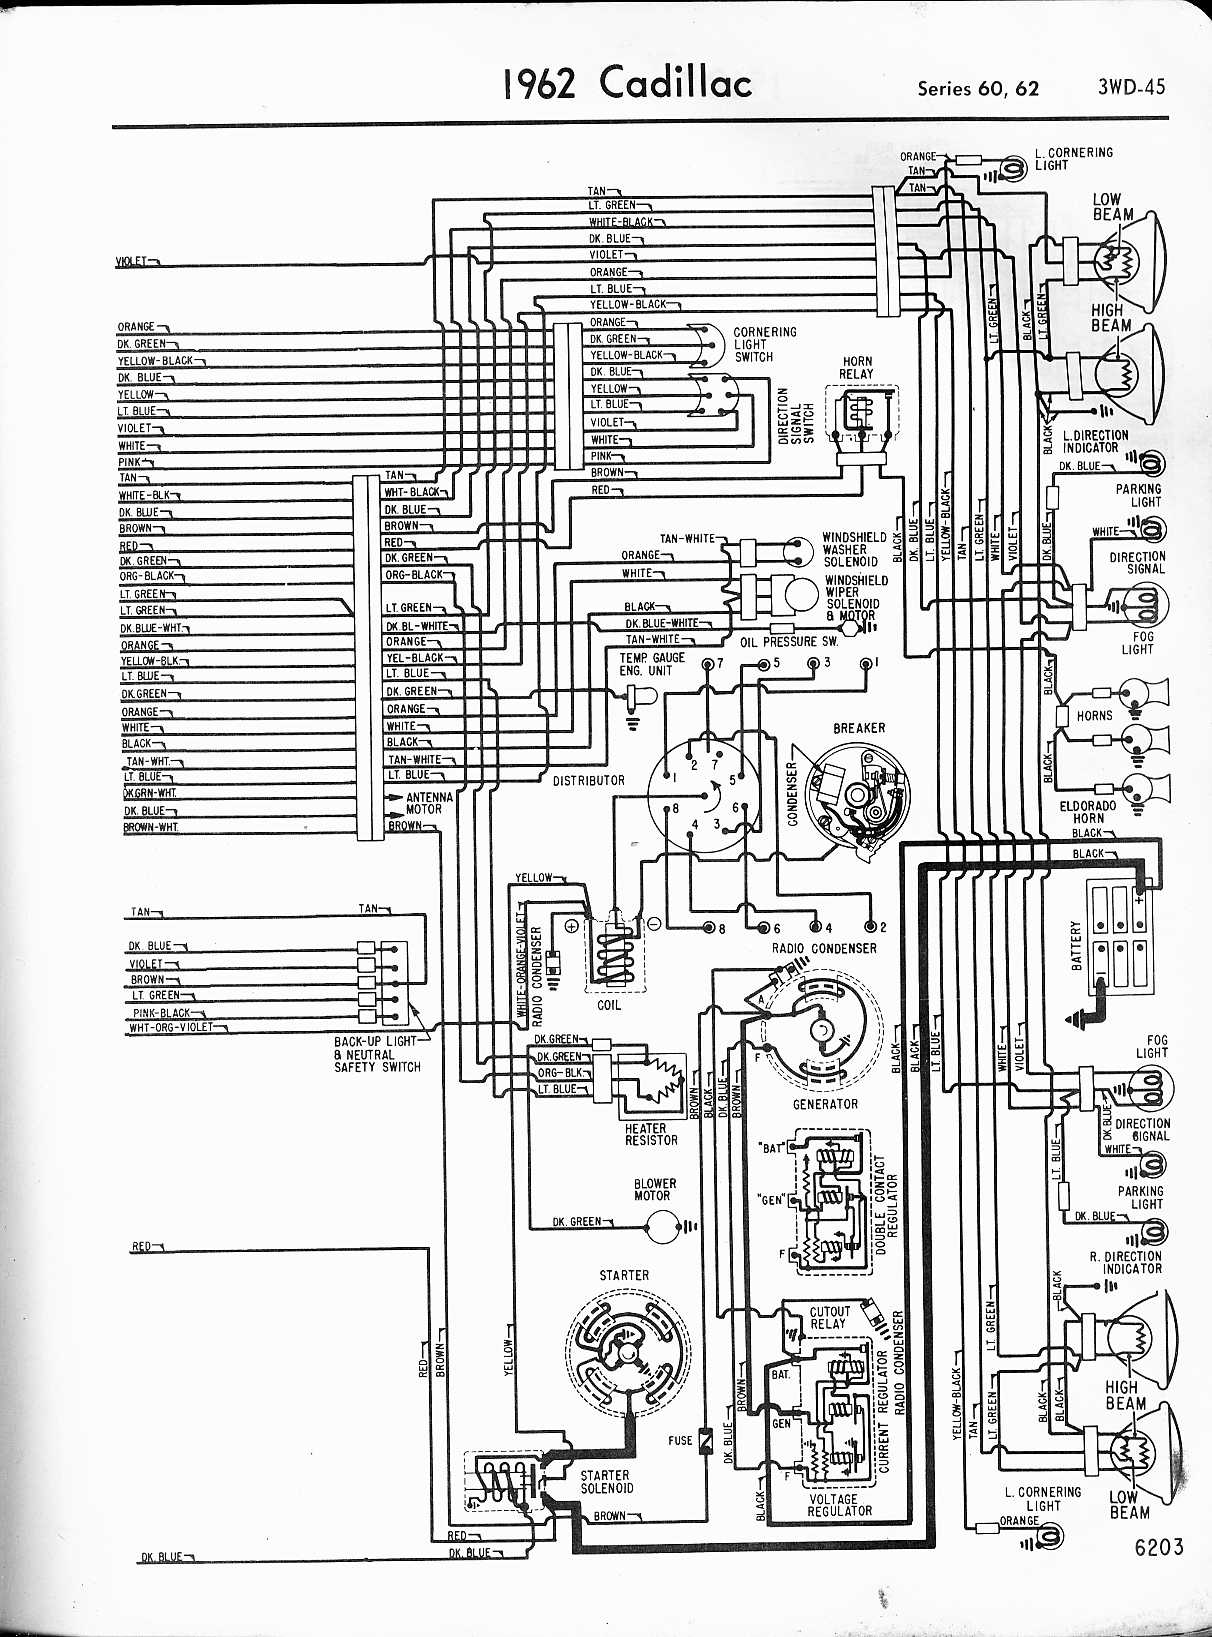 cadillac wiring diagrams 1957 1965 rh oldcarmanualproject com Cadillac Catera 3.0 Engine Diagram Cadillac Catera 3.0 Engine Diagram